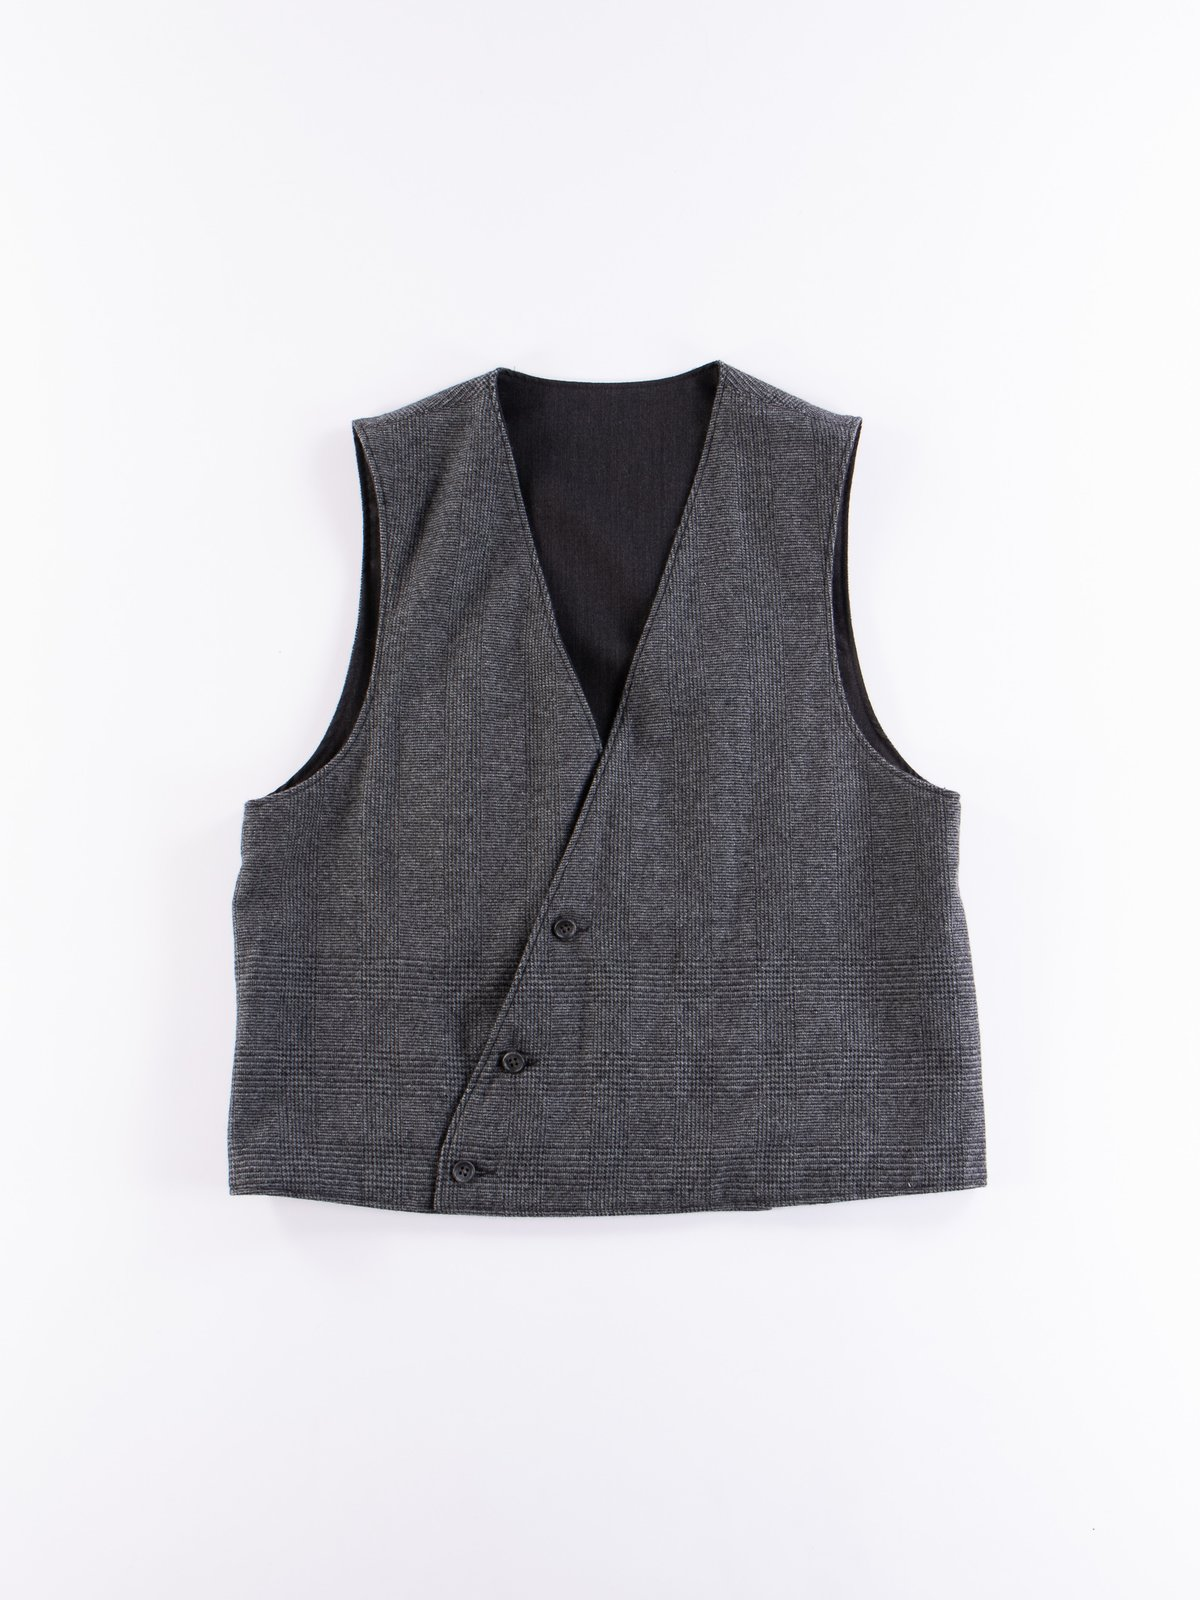 Charcoal Worsted Wool Gabardine Reversible Vest - Image 5